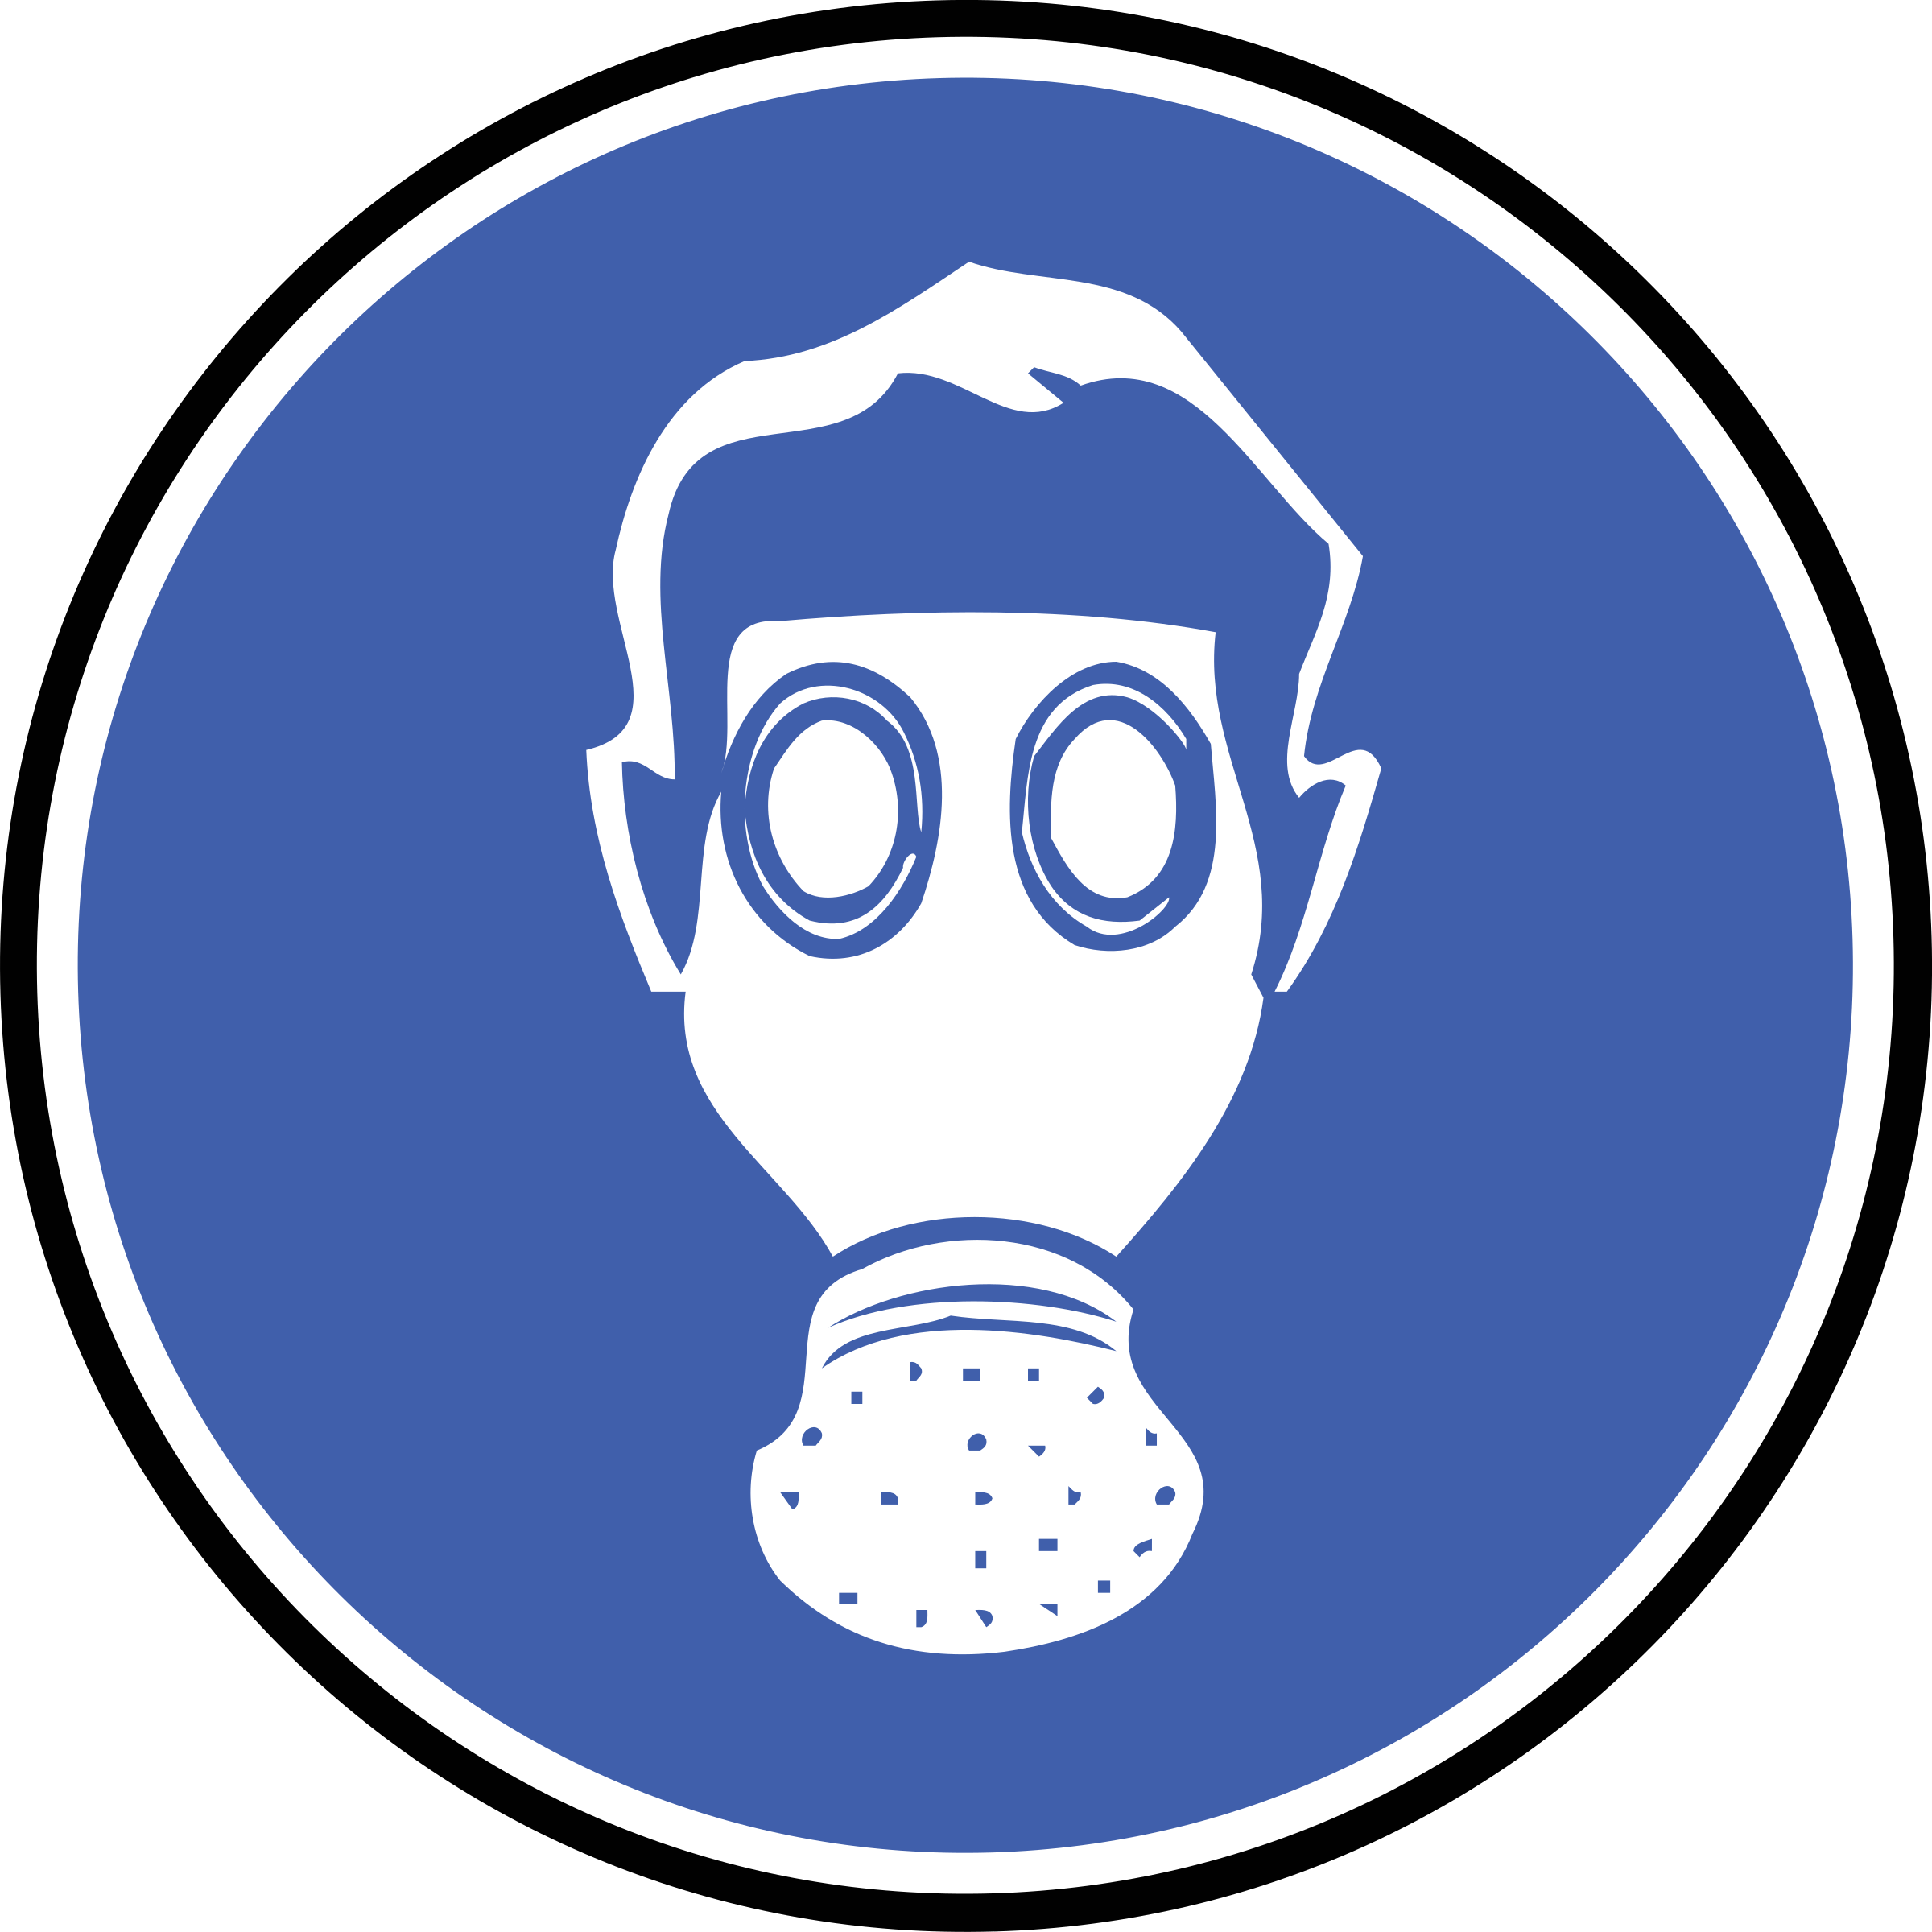 Mask clipart symbol. Protections gas big image